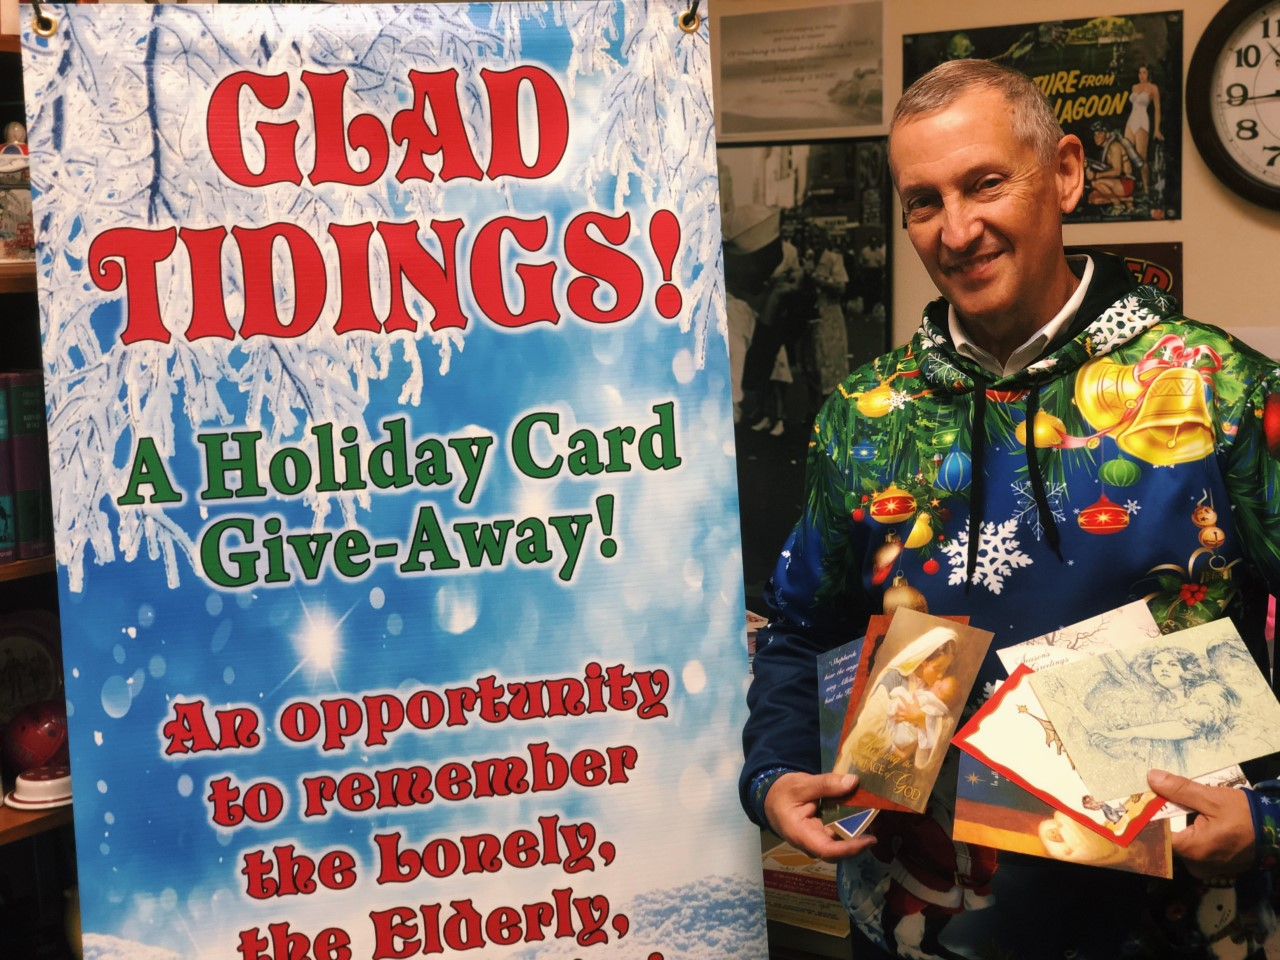 Volunteers sought for card giveaway, Nov. 22